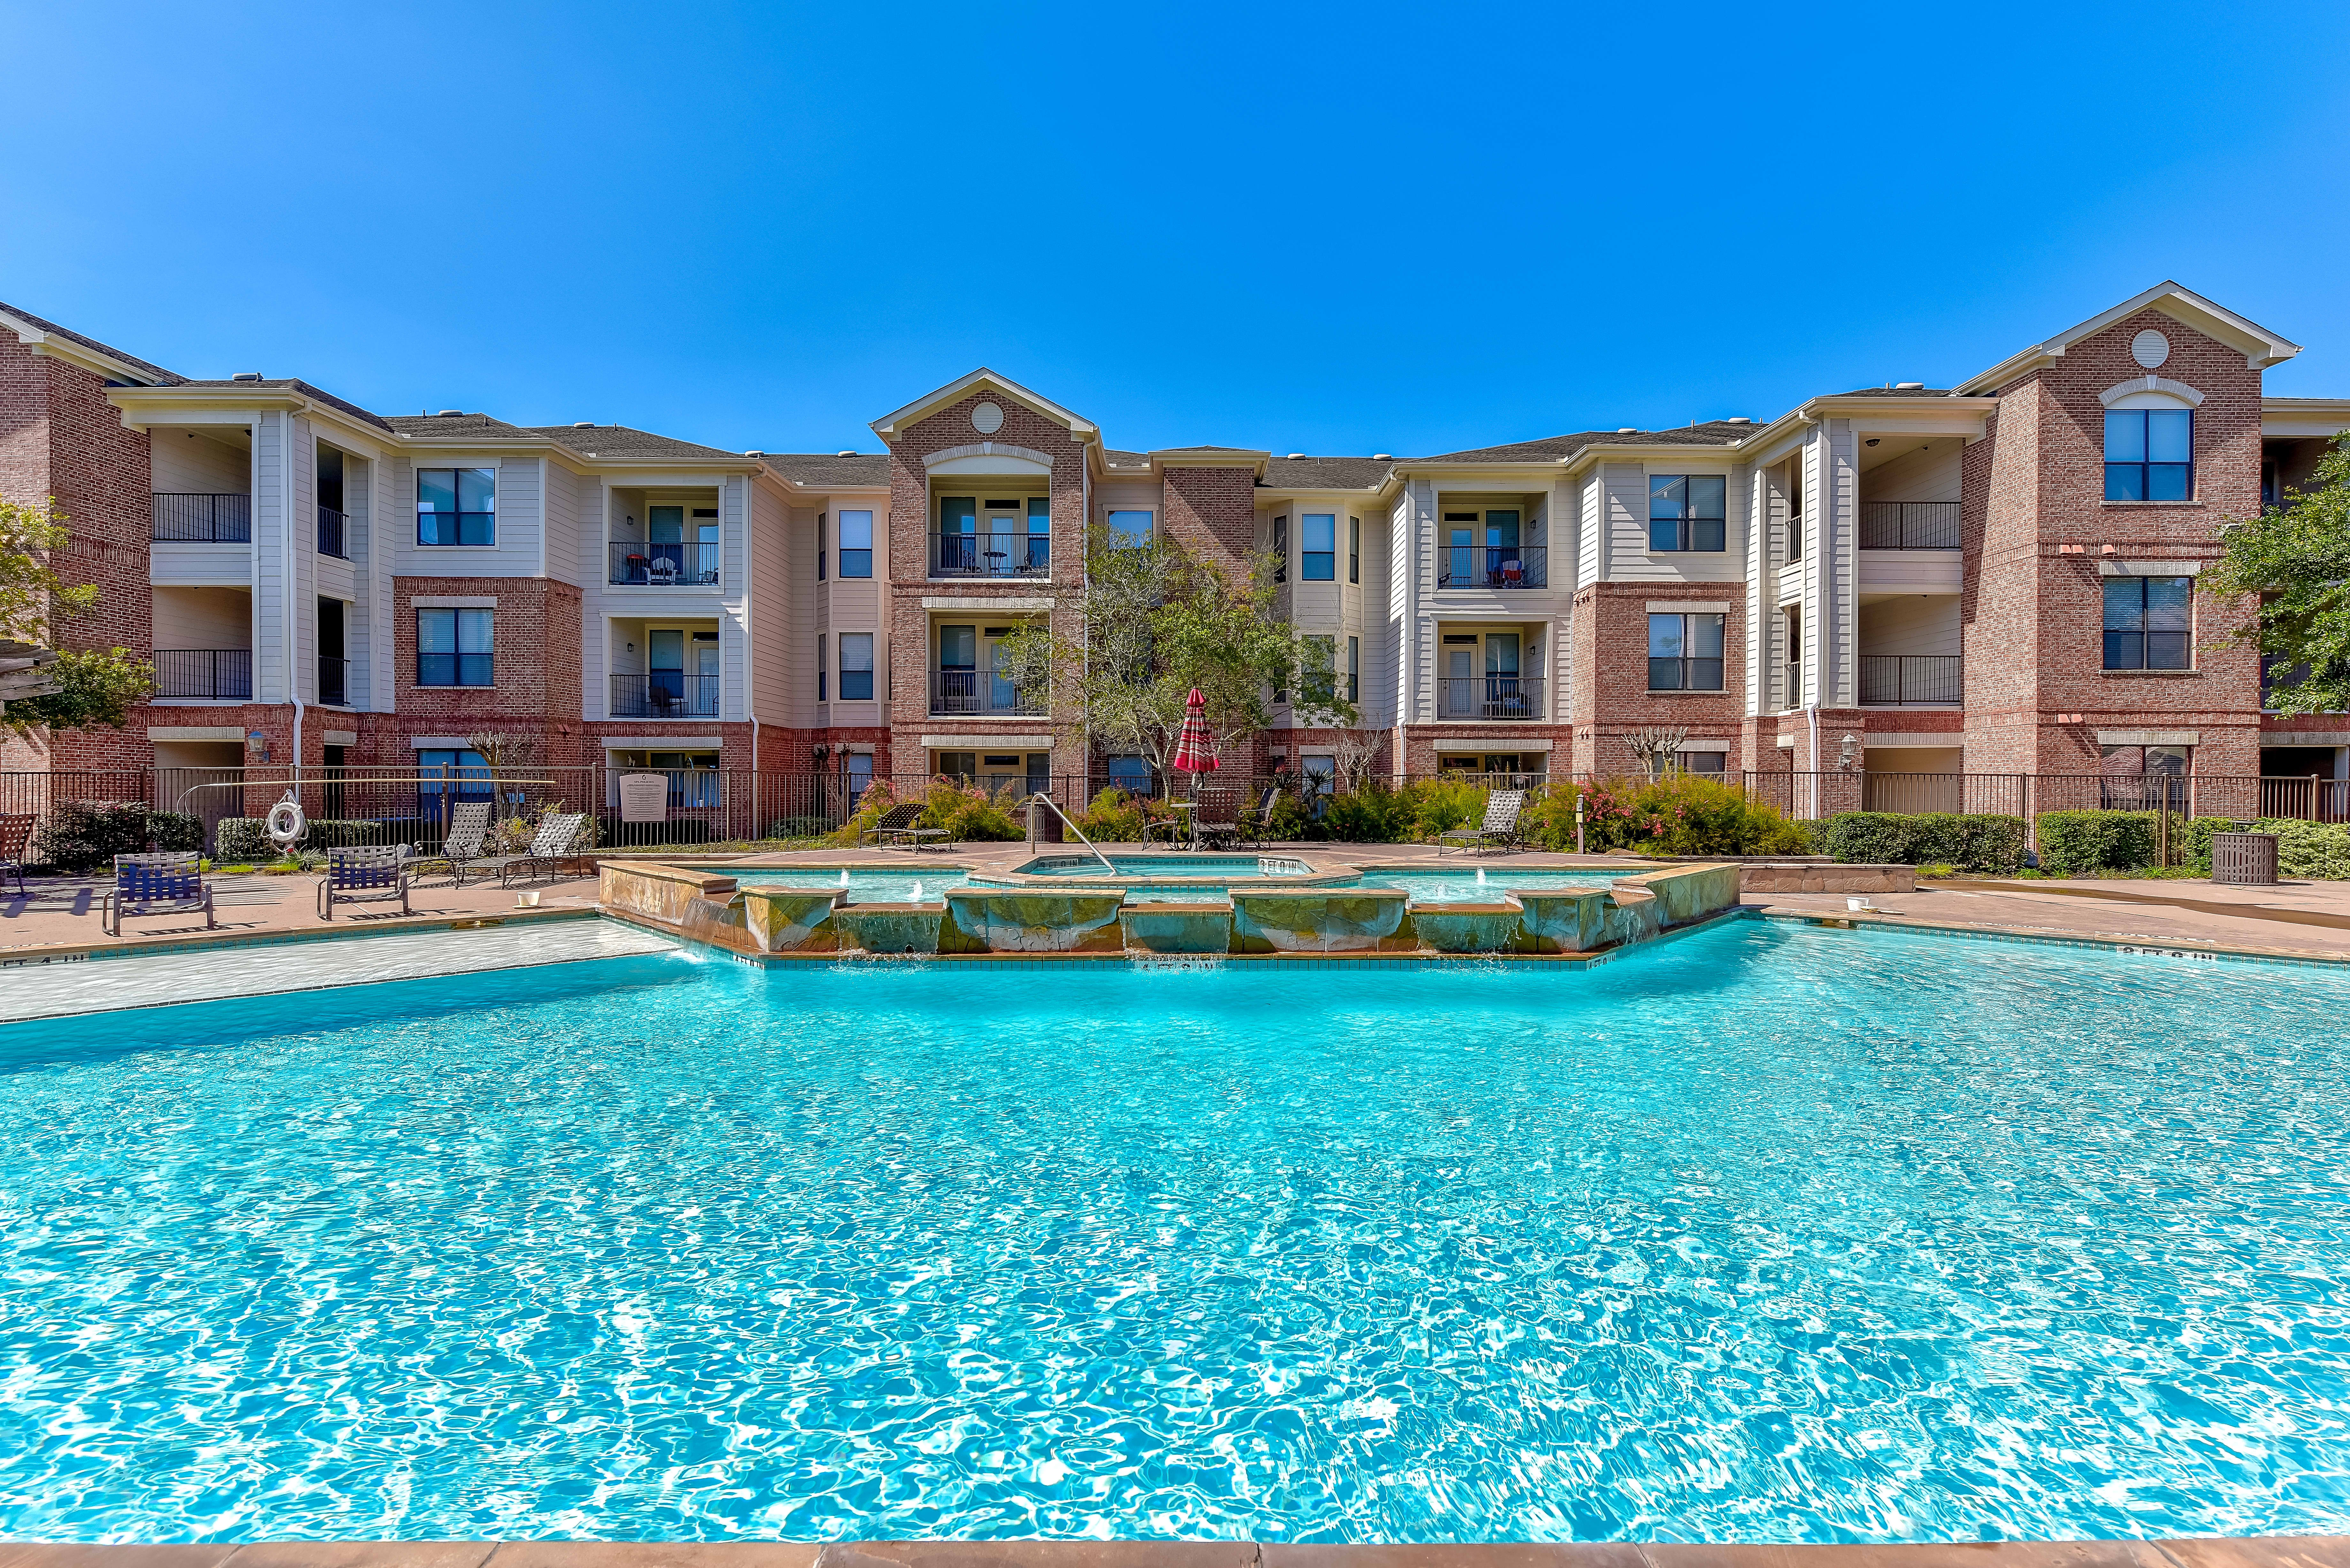 Apartments Near ITT Technical Institute-Houston North The Lakes at Cypresswood for ITT Technical Institute-Houston North Students in Houston, TX